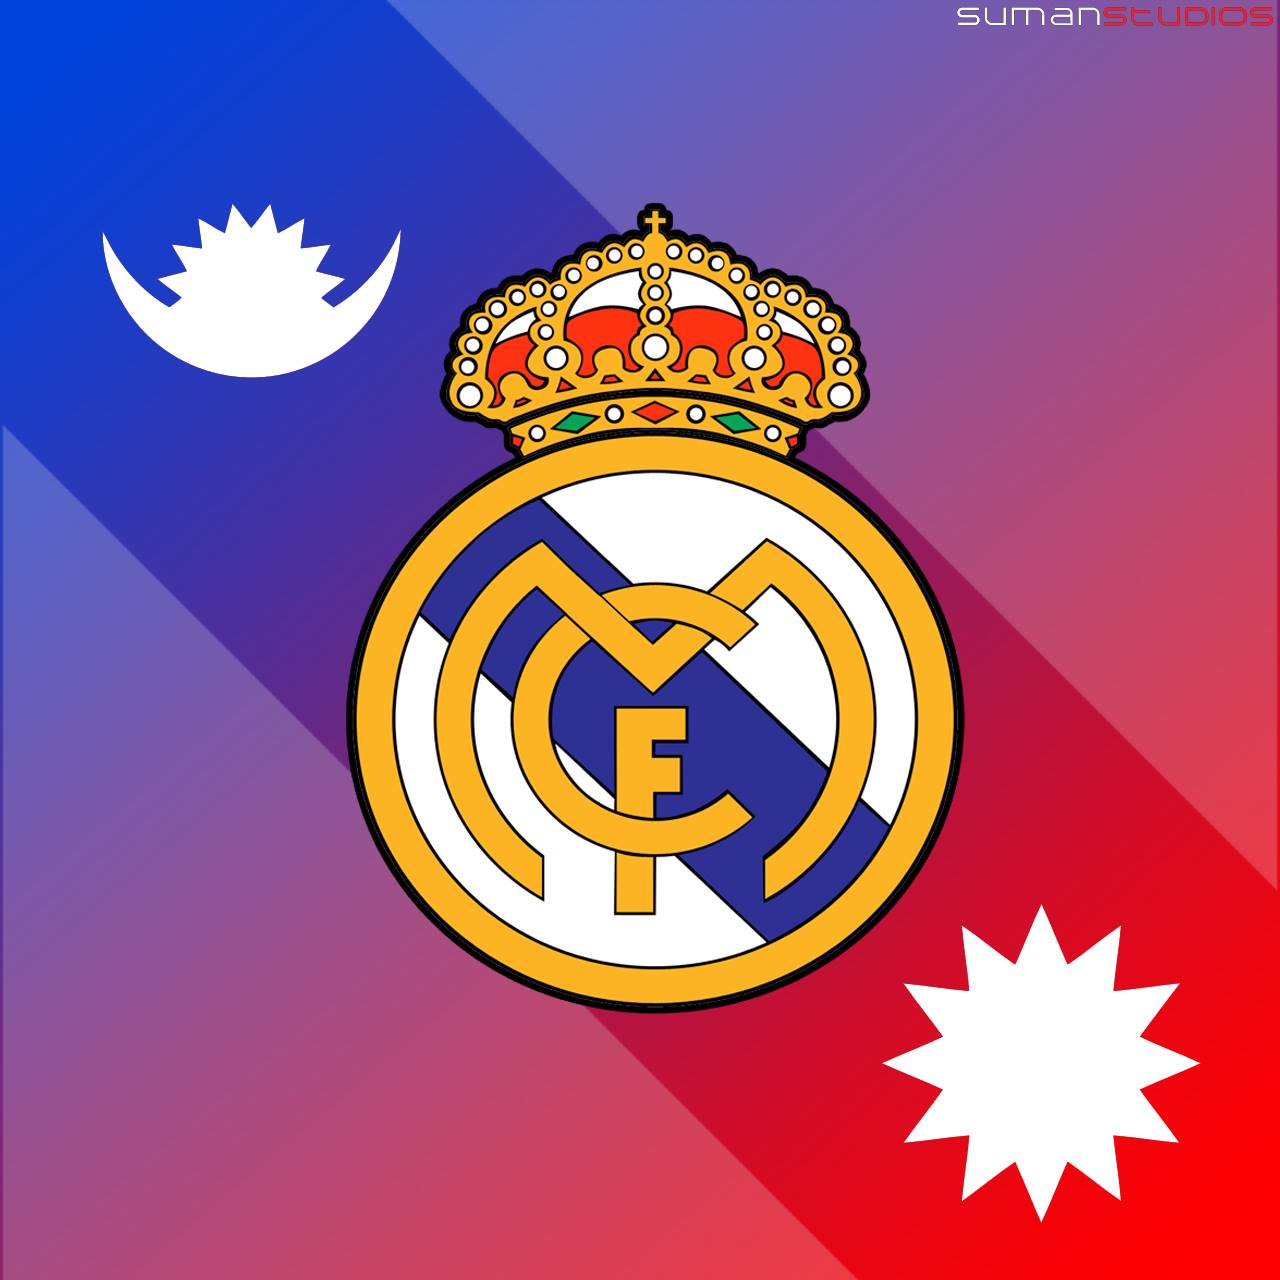 Real Madrid Fc Nepal Logo Wallpaper By Sumanstudios Reyal Madrid Football Club 1280x1280 Download Hd Wallpaper Wallpapertip